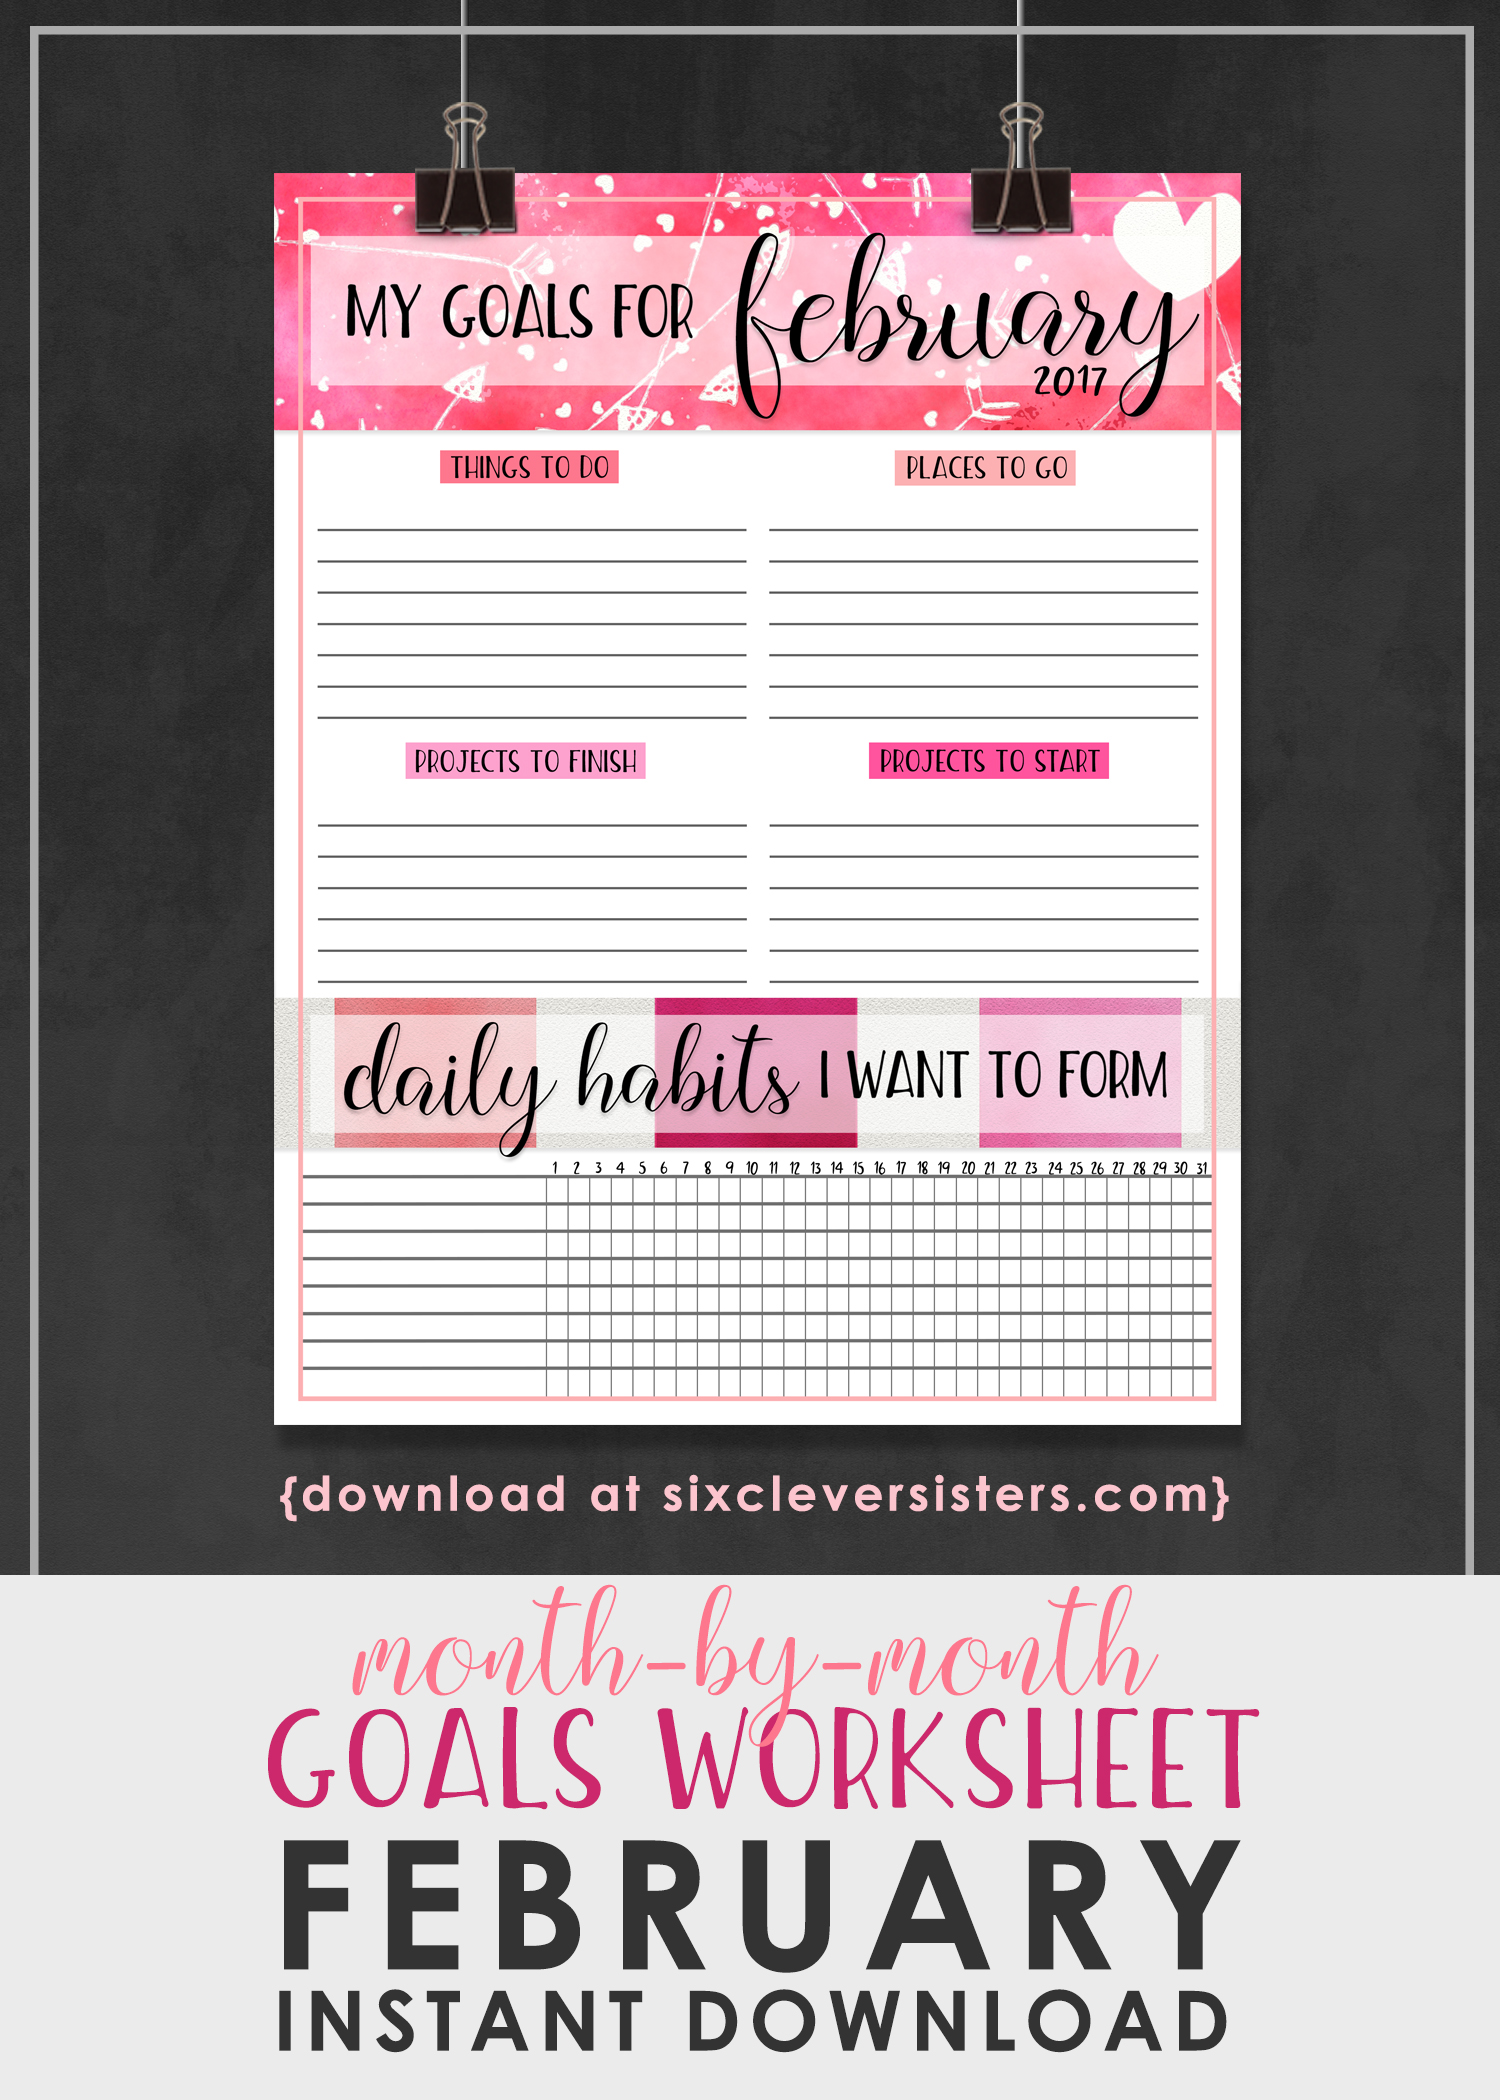 Goals Worksheet Free Printable February